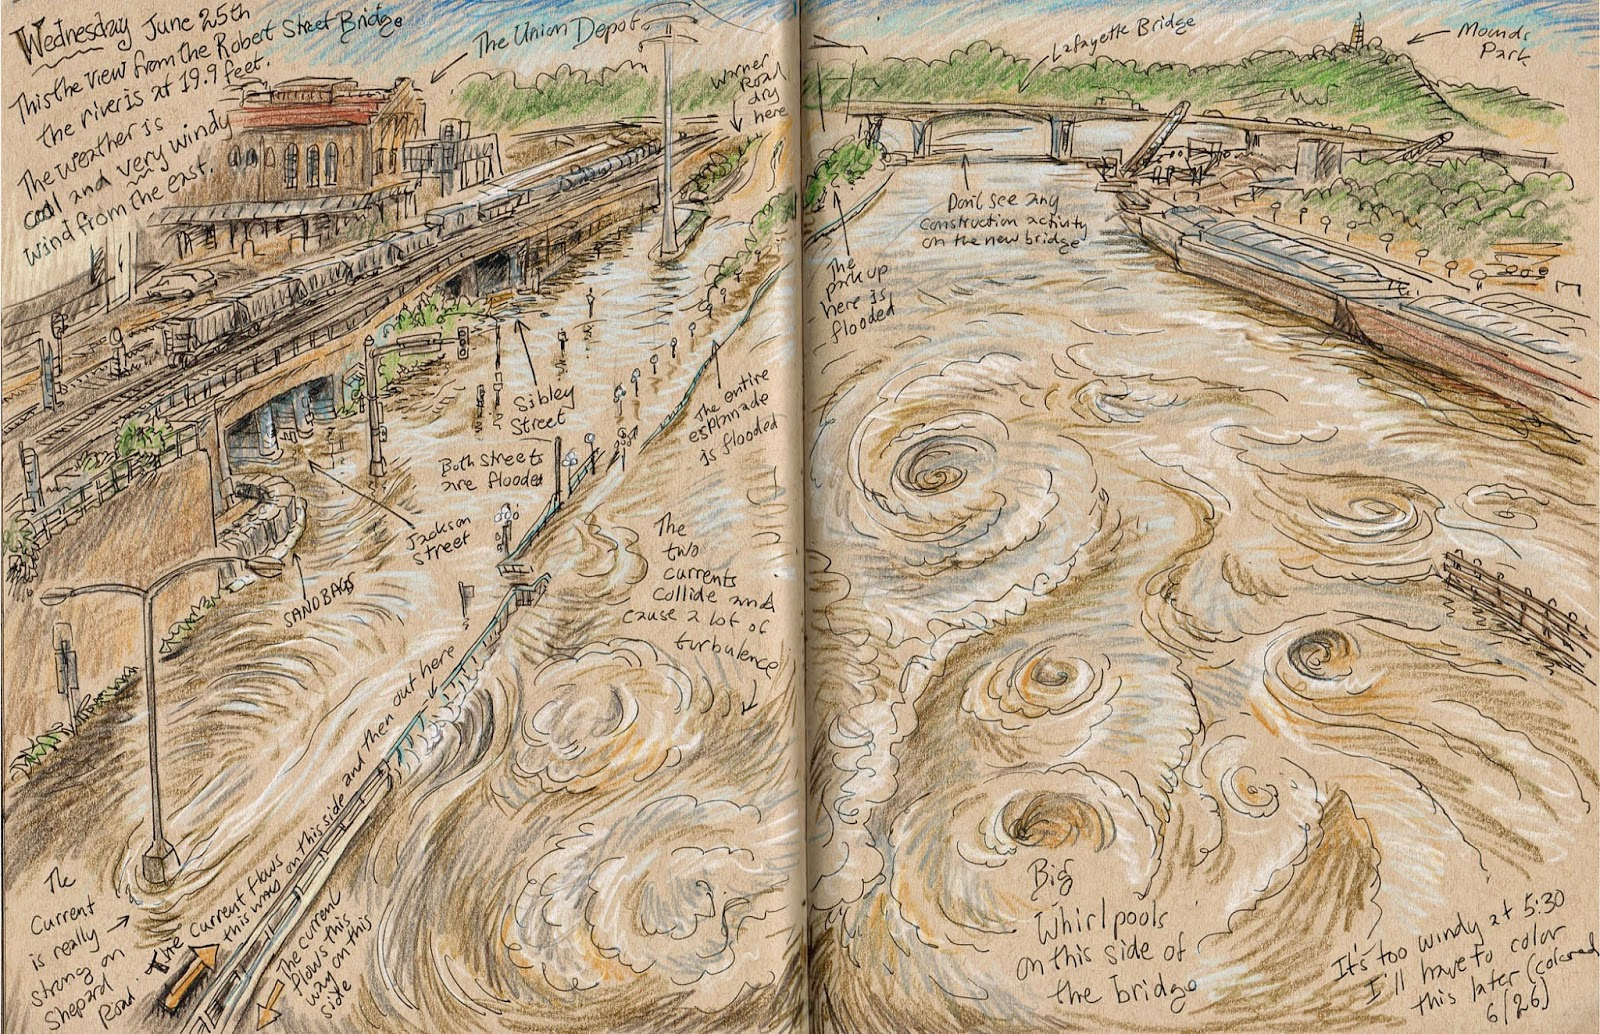 http://urbansketchers-twincities.blogspot.com/2014/06/sketches-of-flooding-in-saint-paul-part_27.html